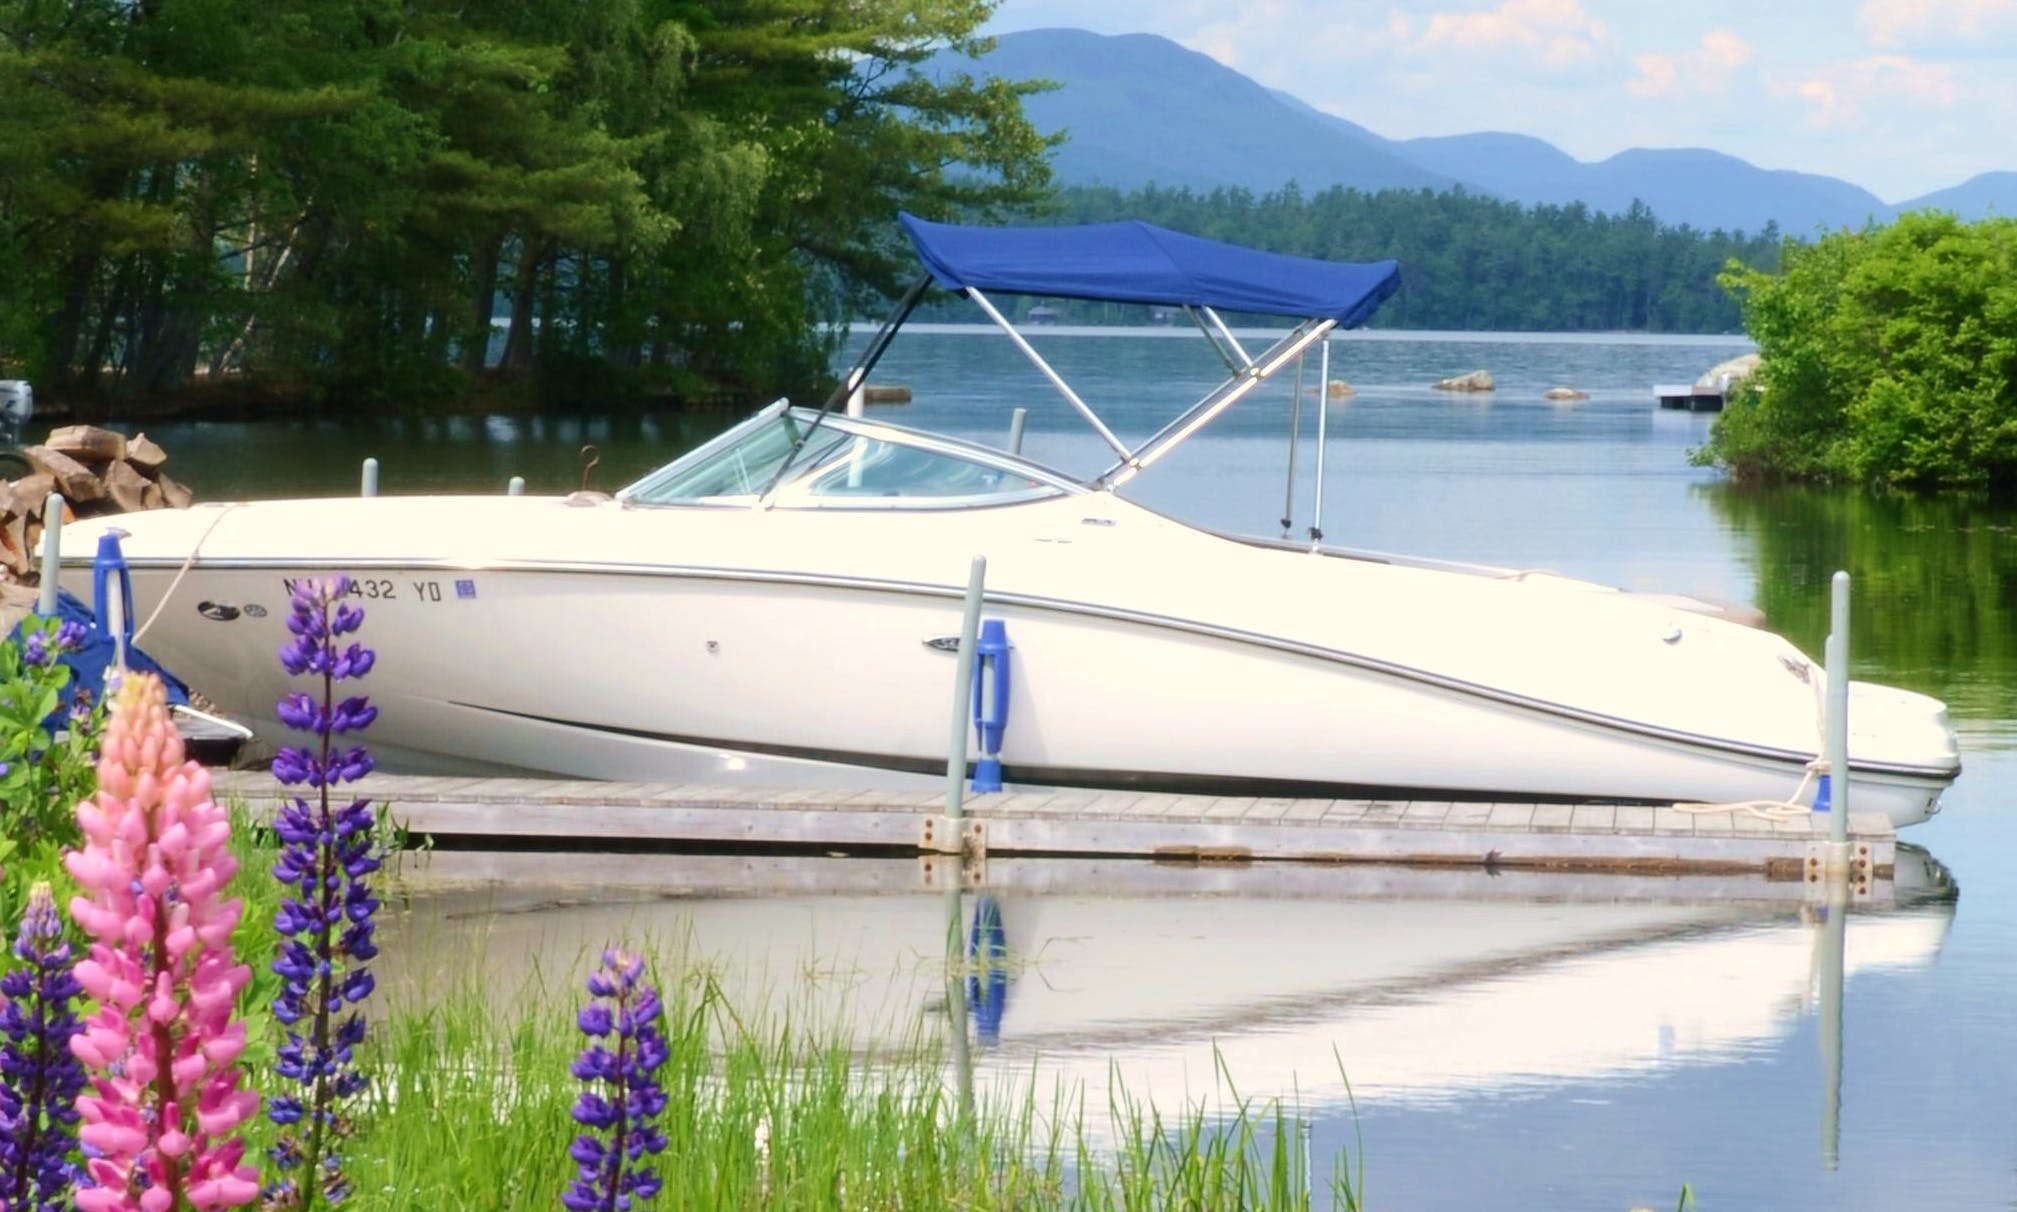 23ft Sea Ray Bowrider Boat Rental in Holderness, New Hampshire